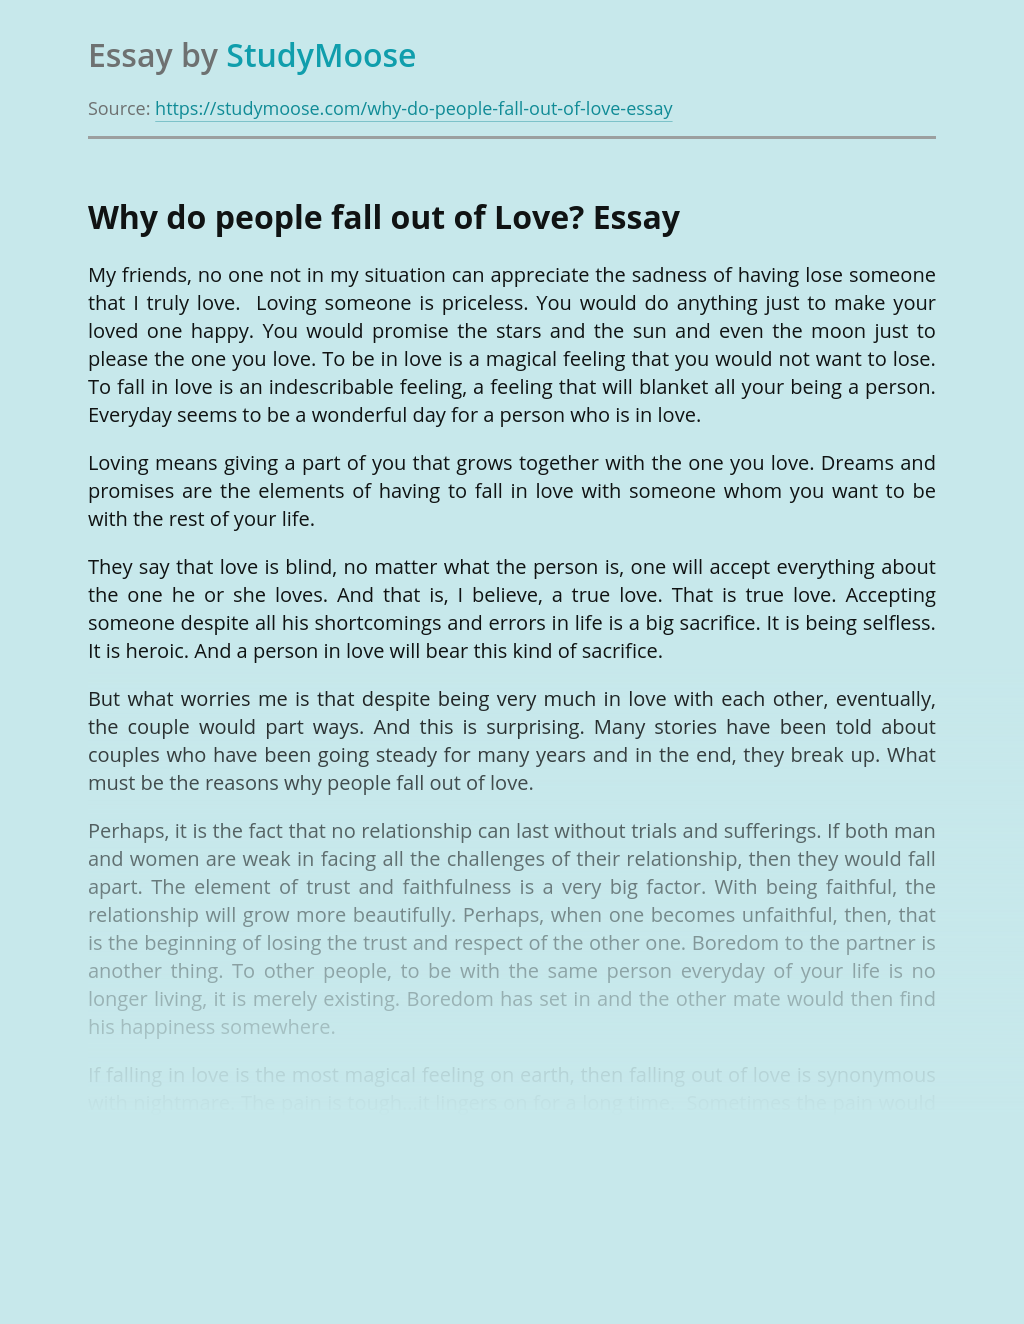 Why do people fall out of Love?